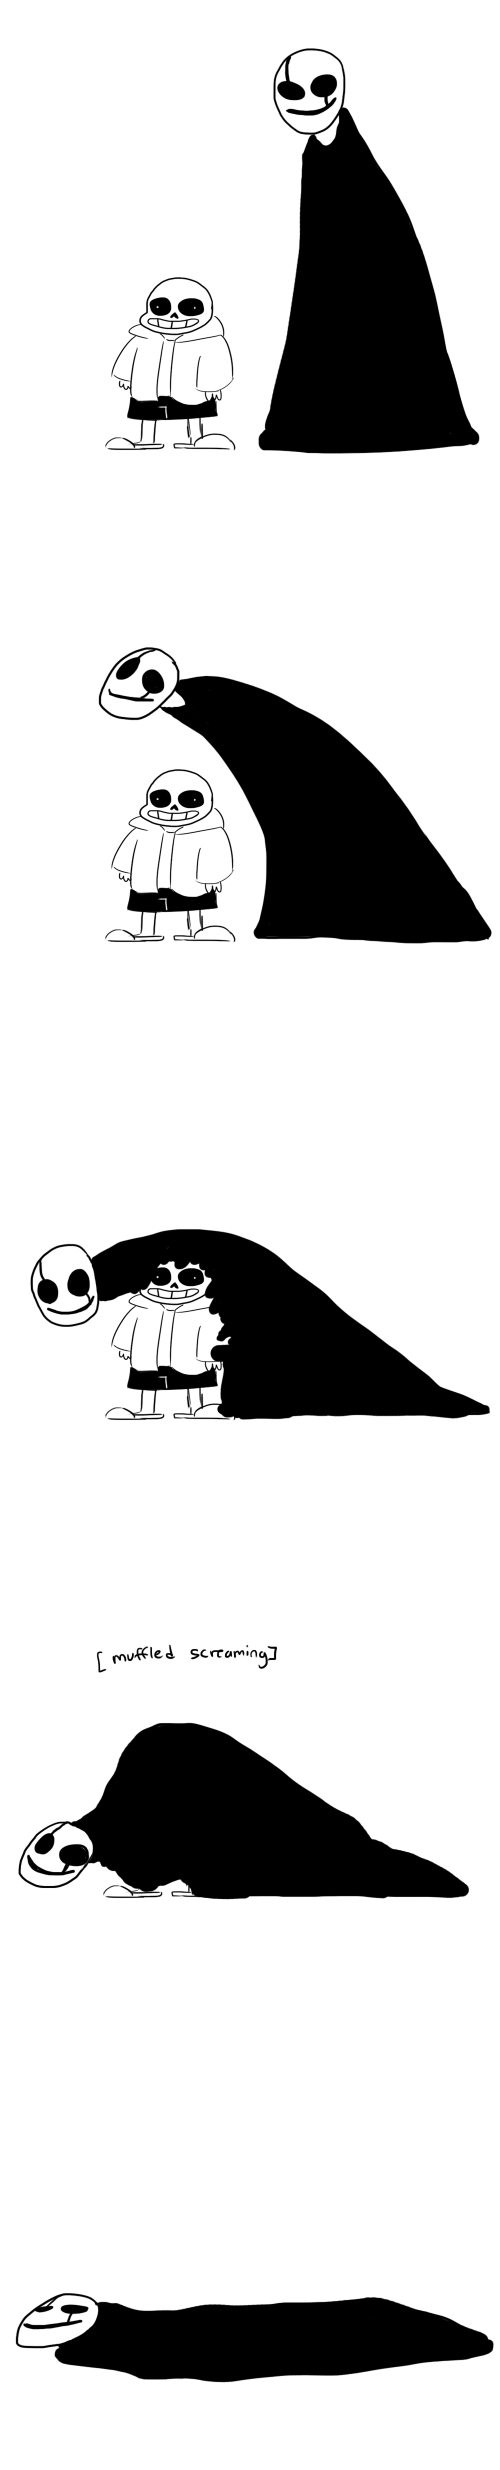 Why am I Laughing?XD>>>>because Gaster just glomped Sans